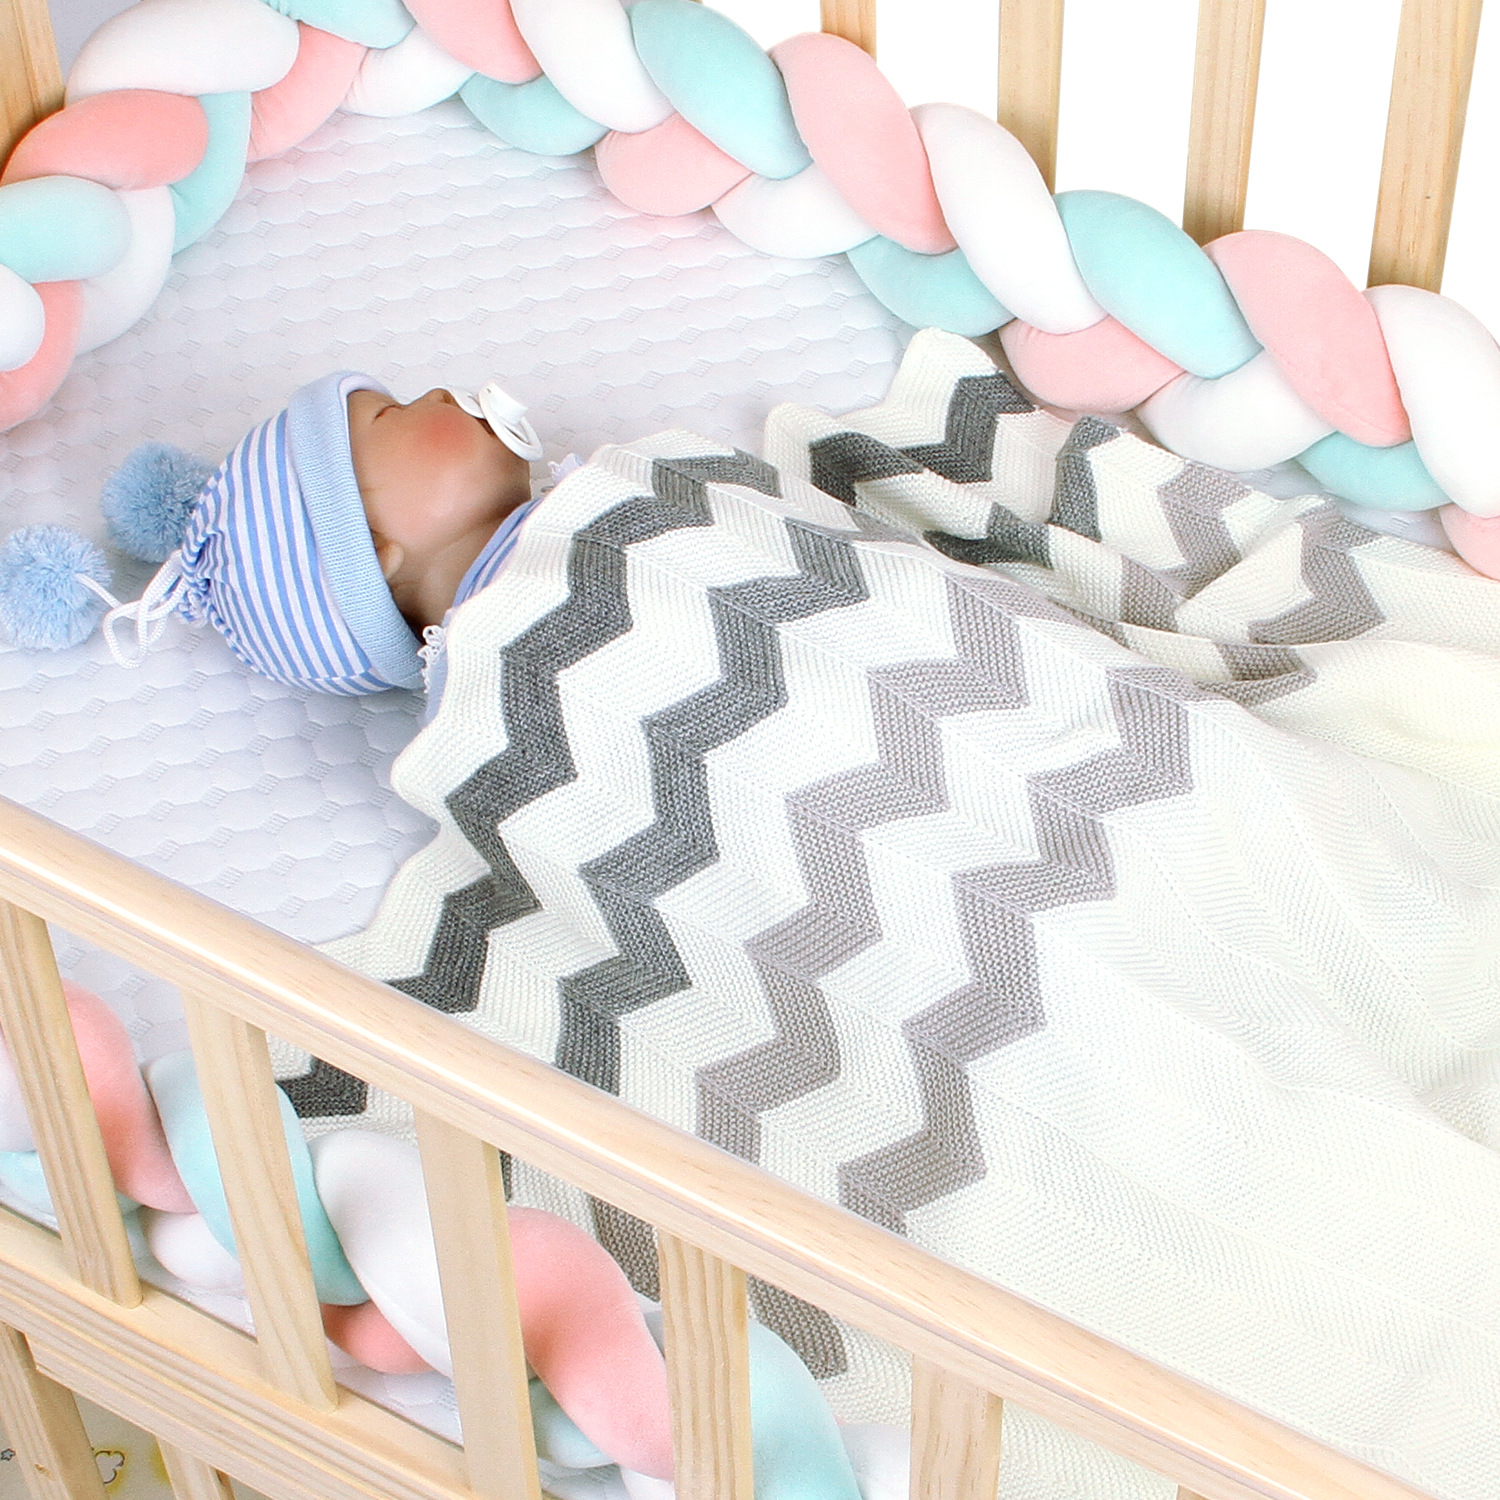 Baby Blanket Newborn Soft Infantil Bebes Swaddle Wrap Bedding Quilts Toddler Kids Stroller Covers Acrylic Knitted Muslin Blanket